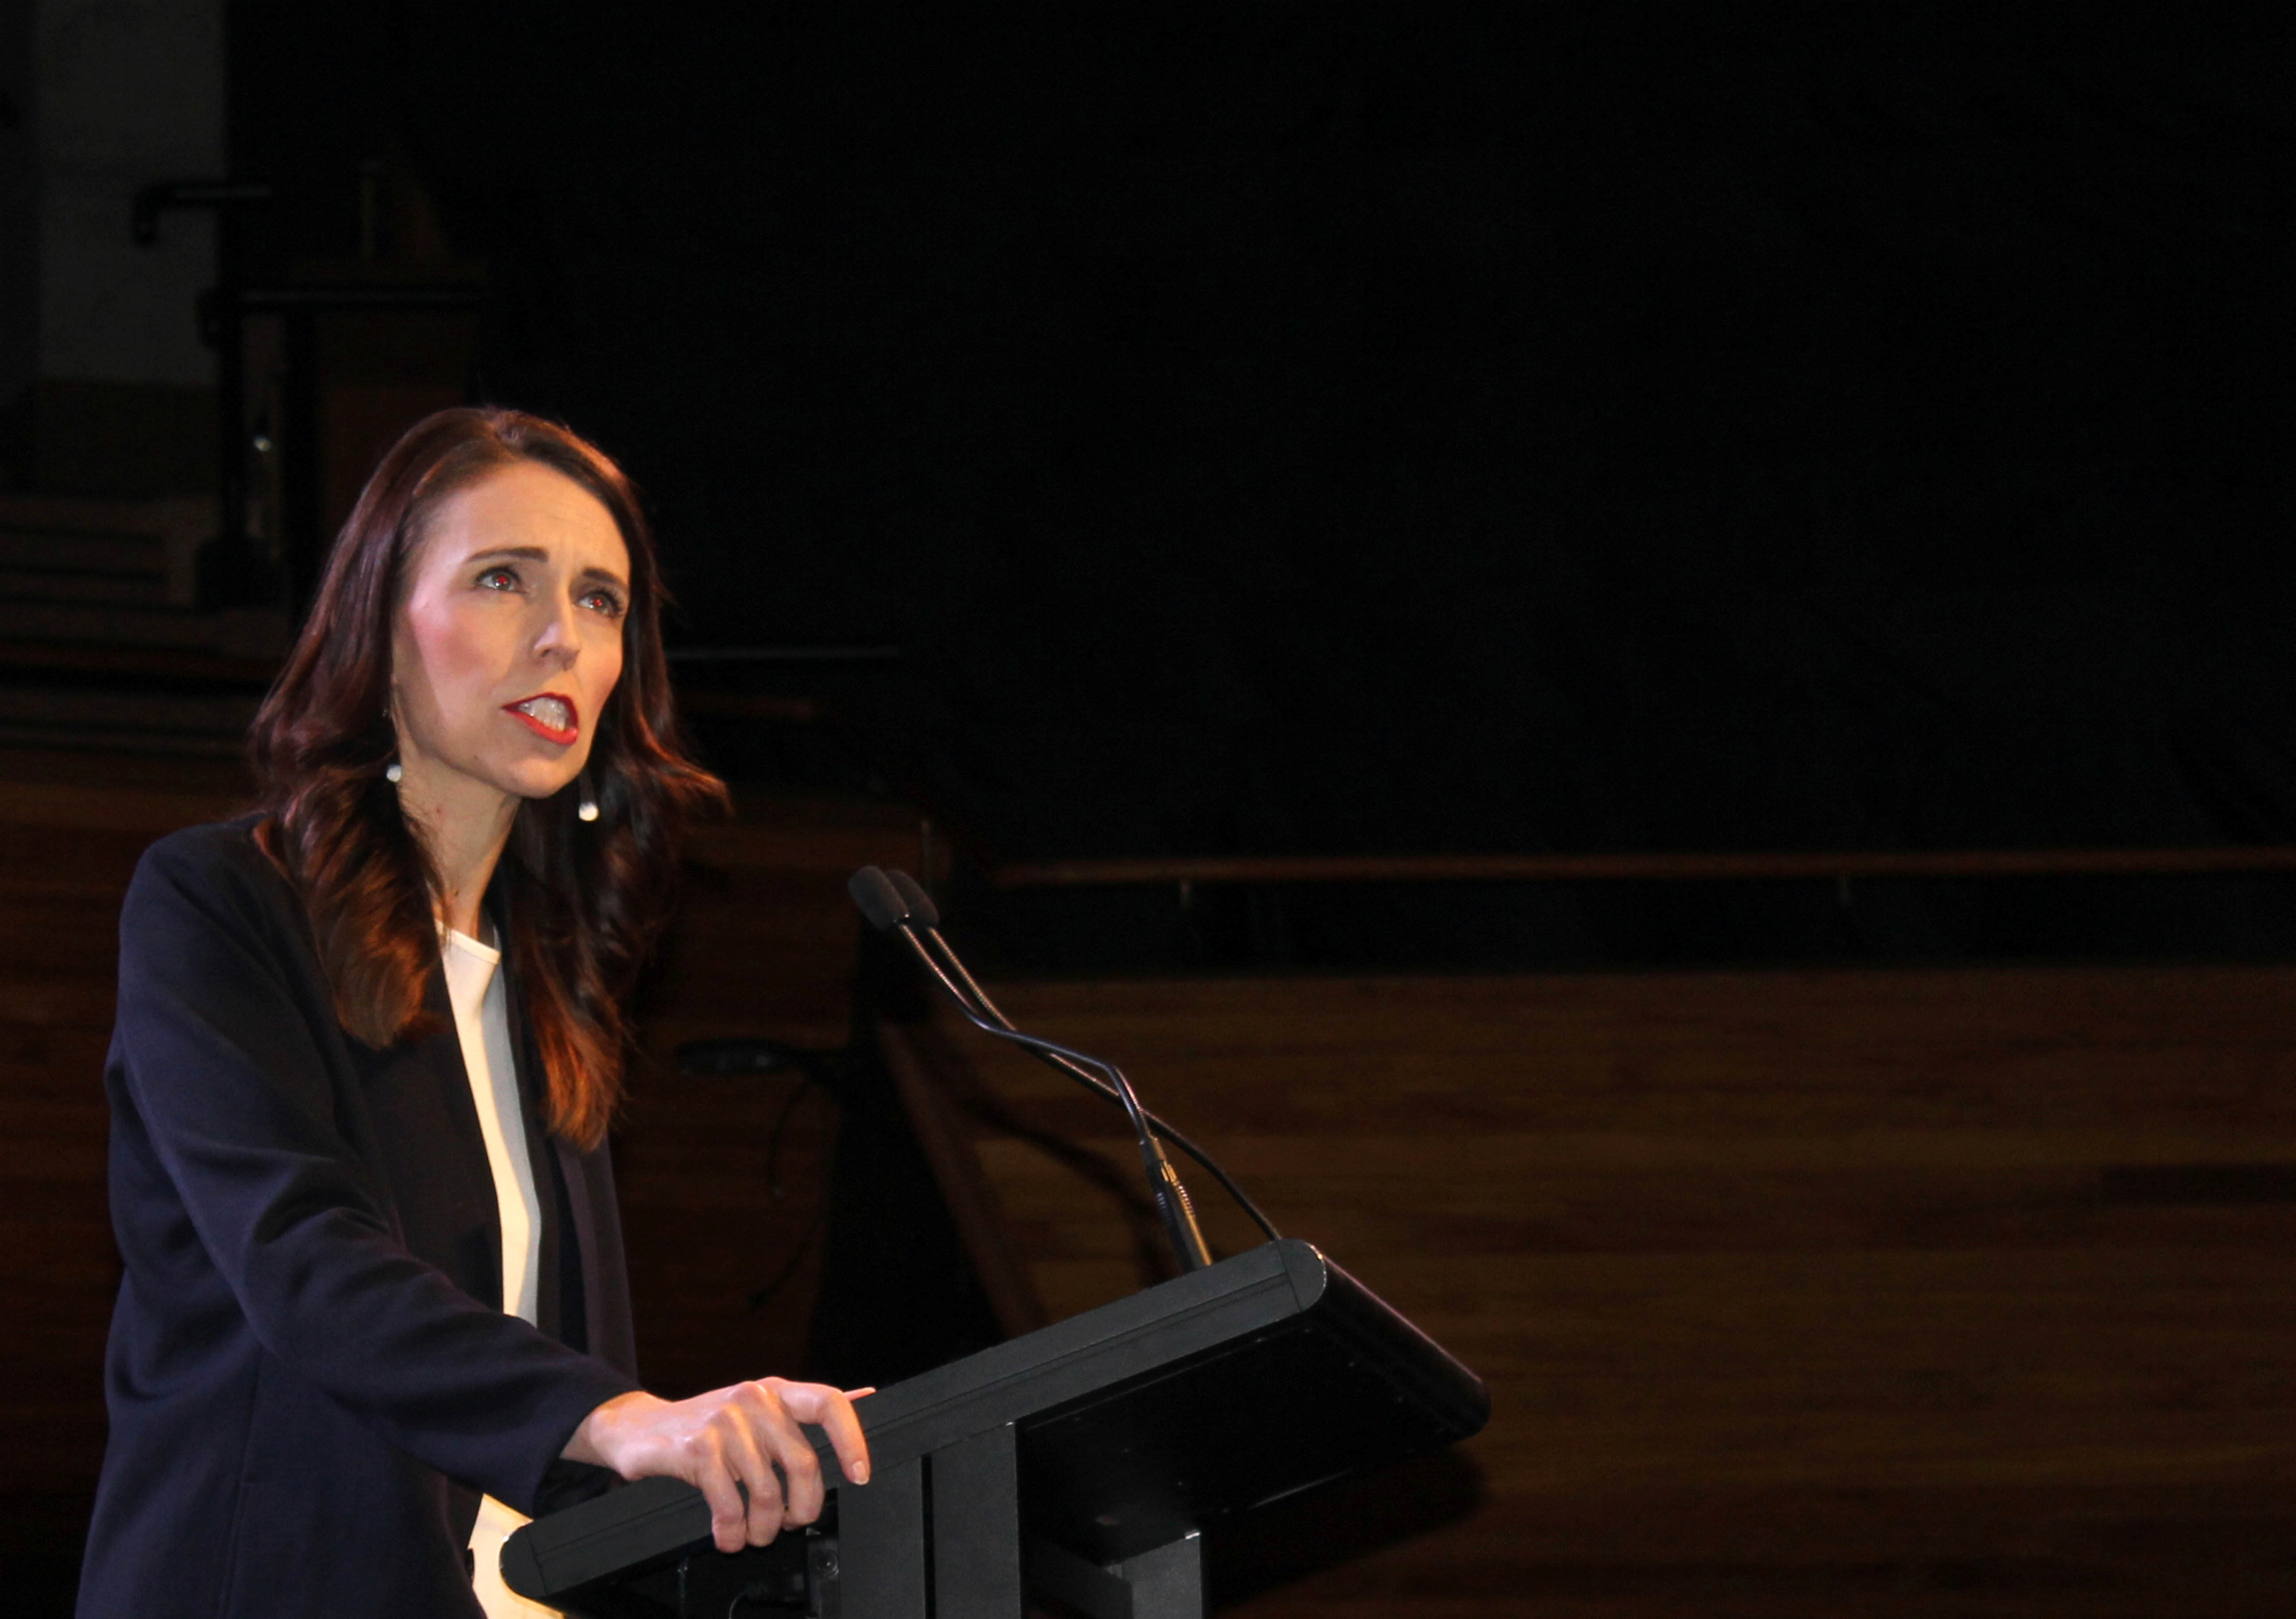 Prime Minister Jacinda Ardern addresses her supporters at a Labour Party event in Wellington, New Zealand, October 11, 2020. REUTERS/Praveen Menon - RC23GJ9CHRK4